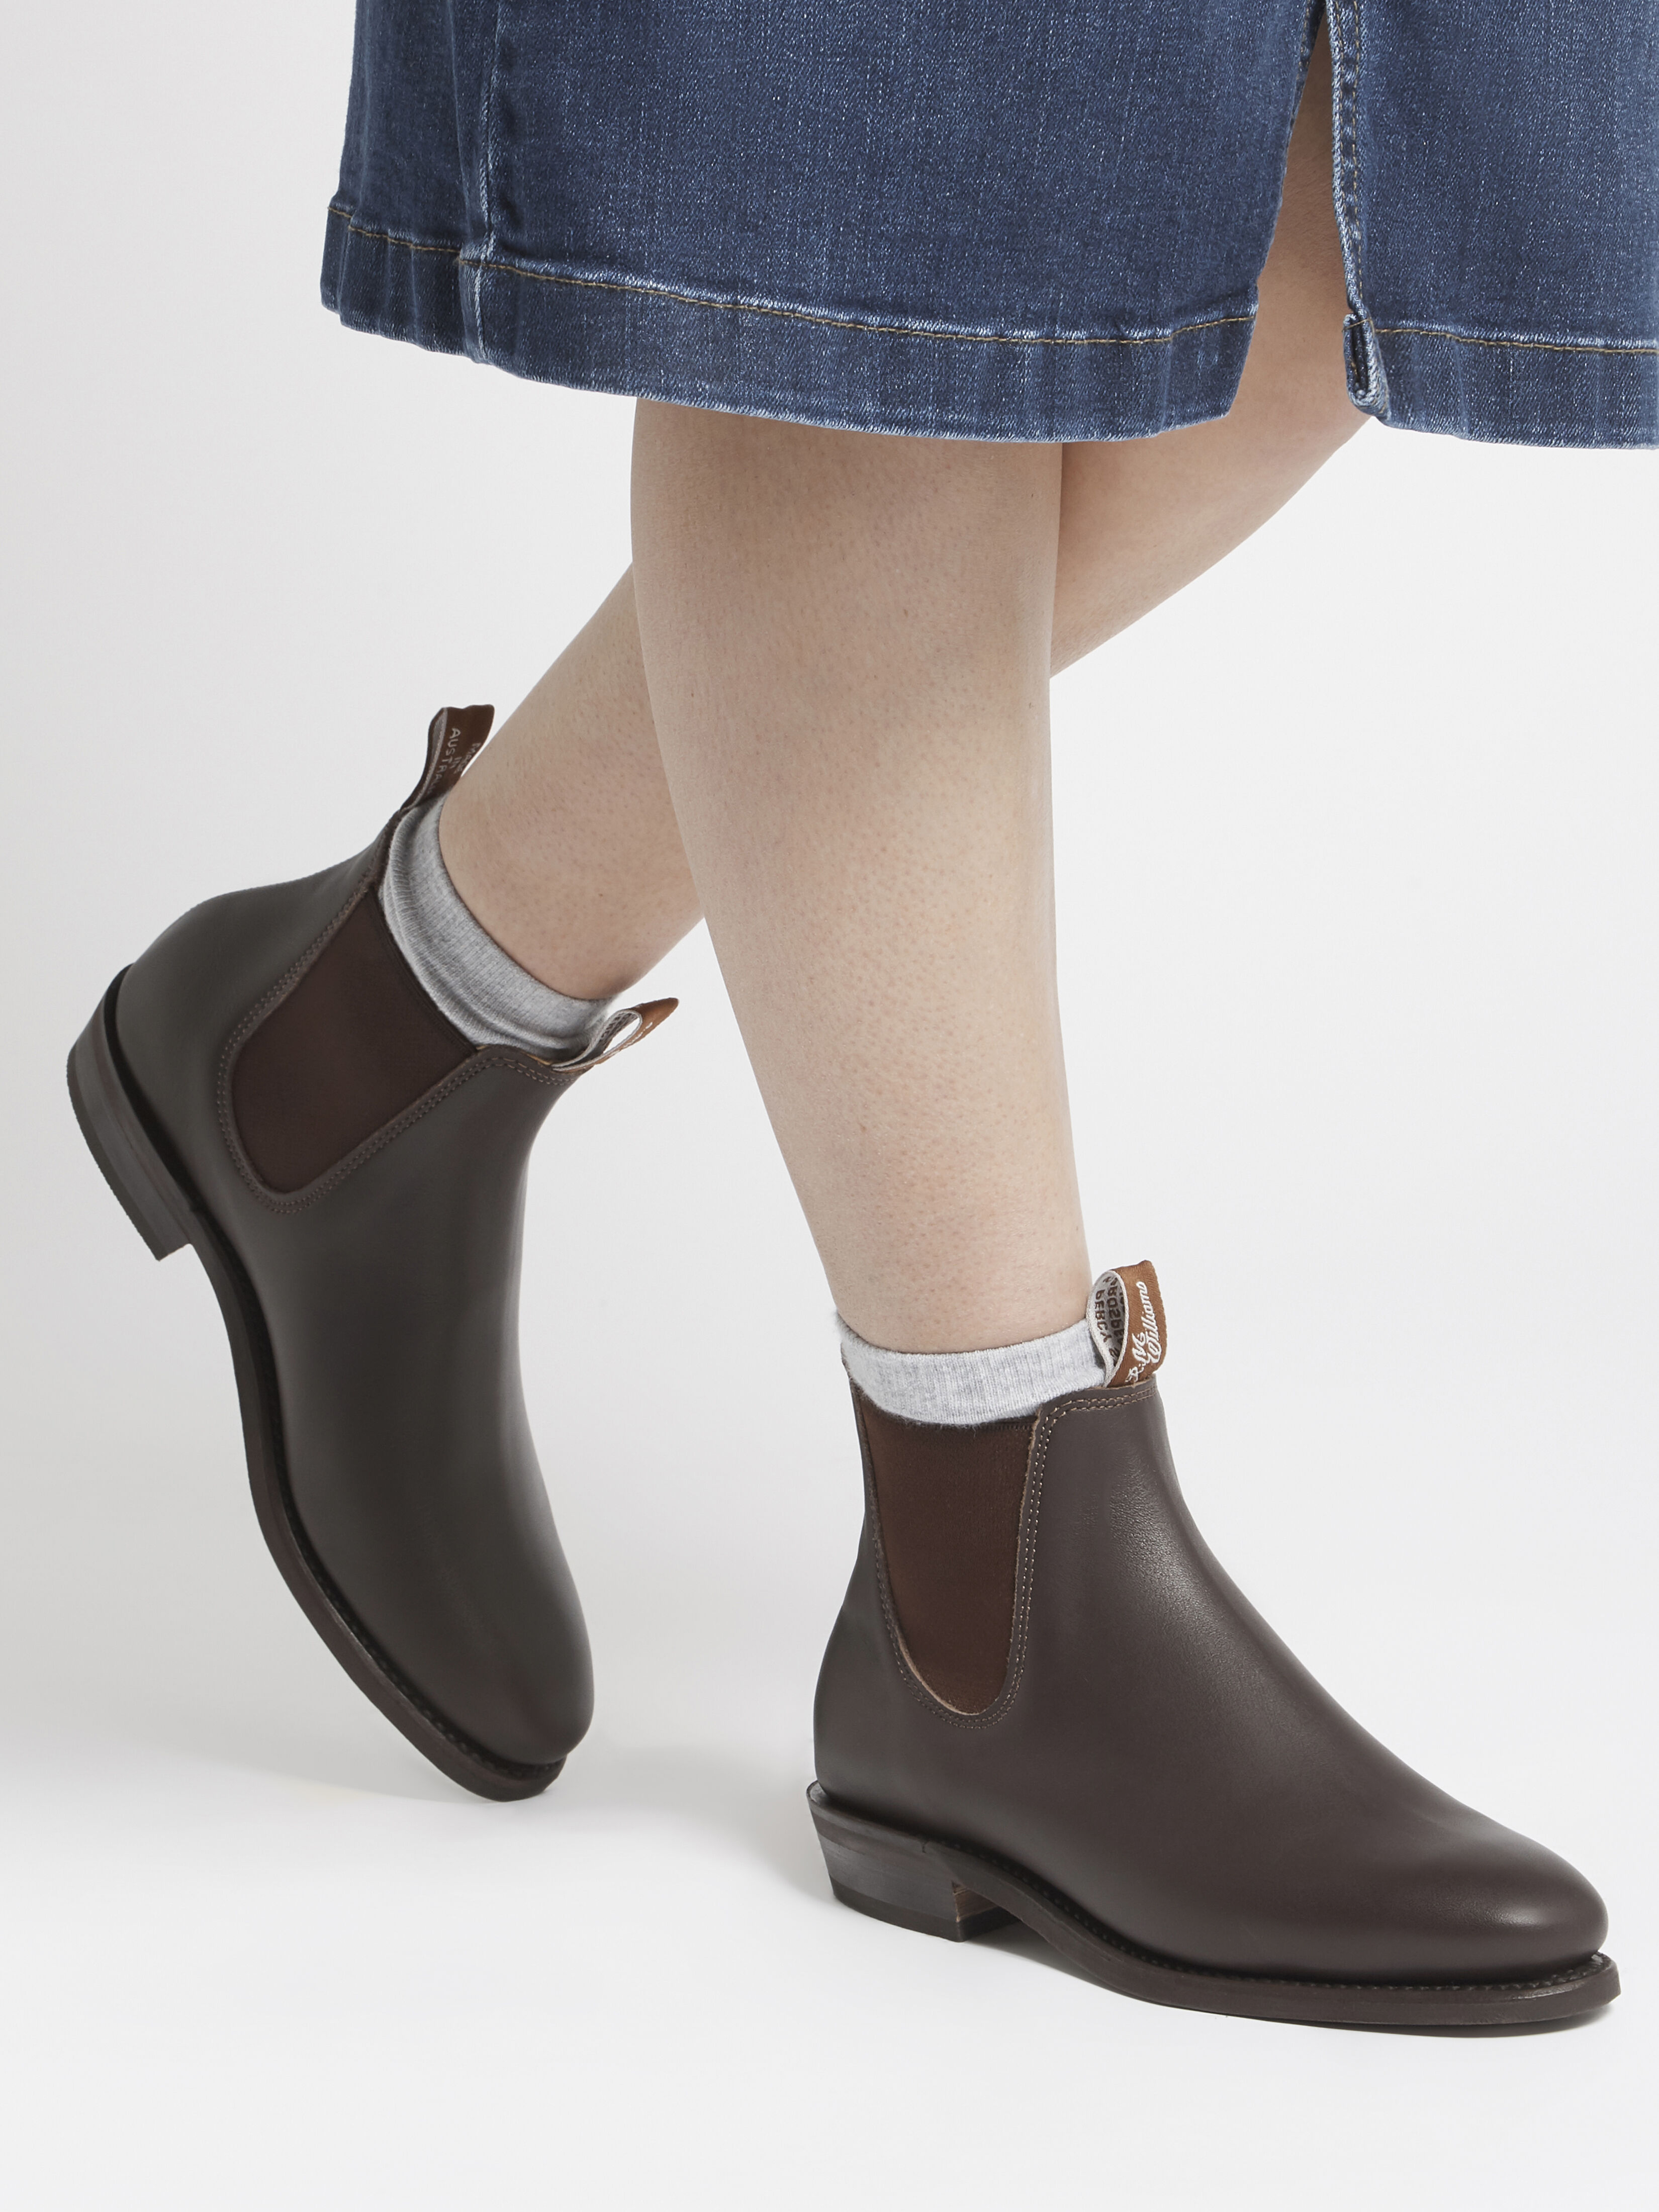 Adelaide Rubber Sole Boot - Women's